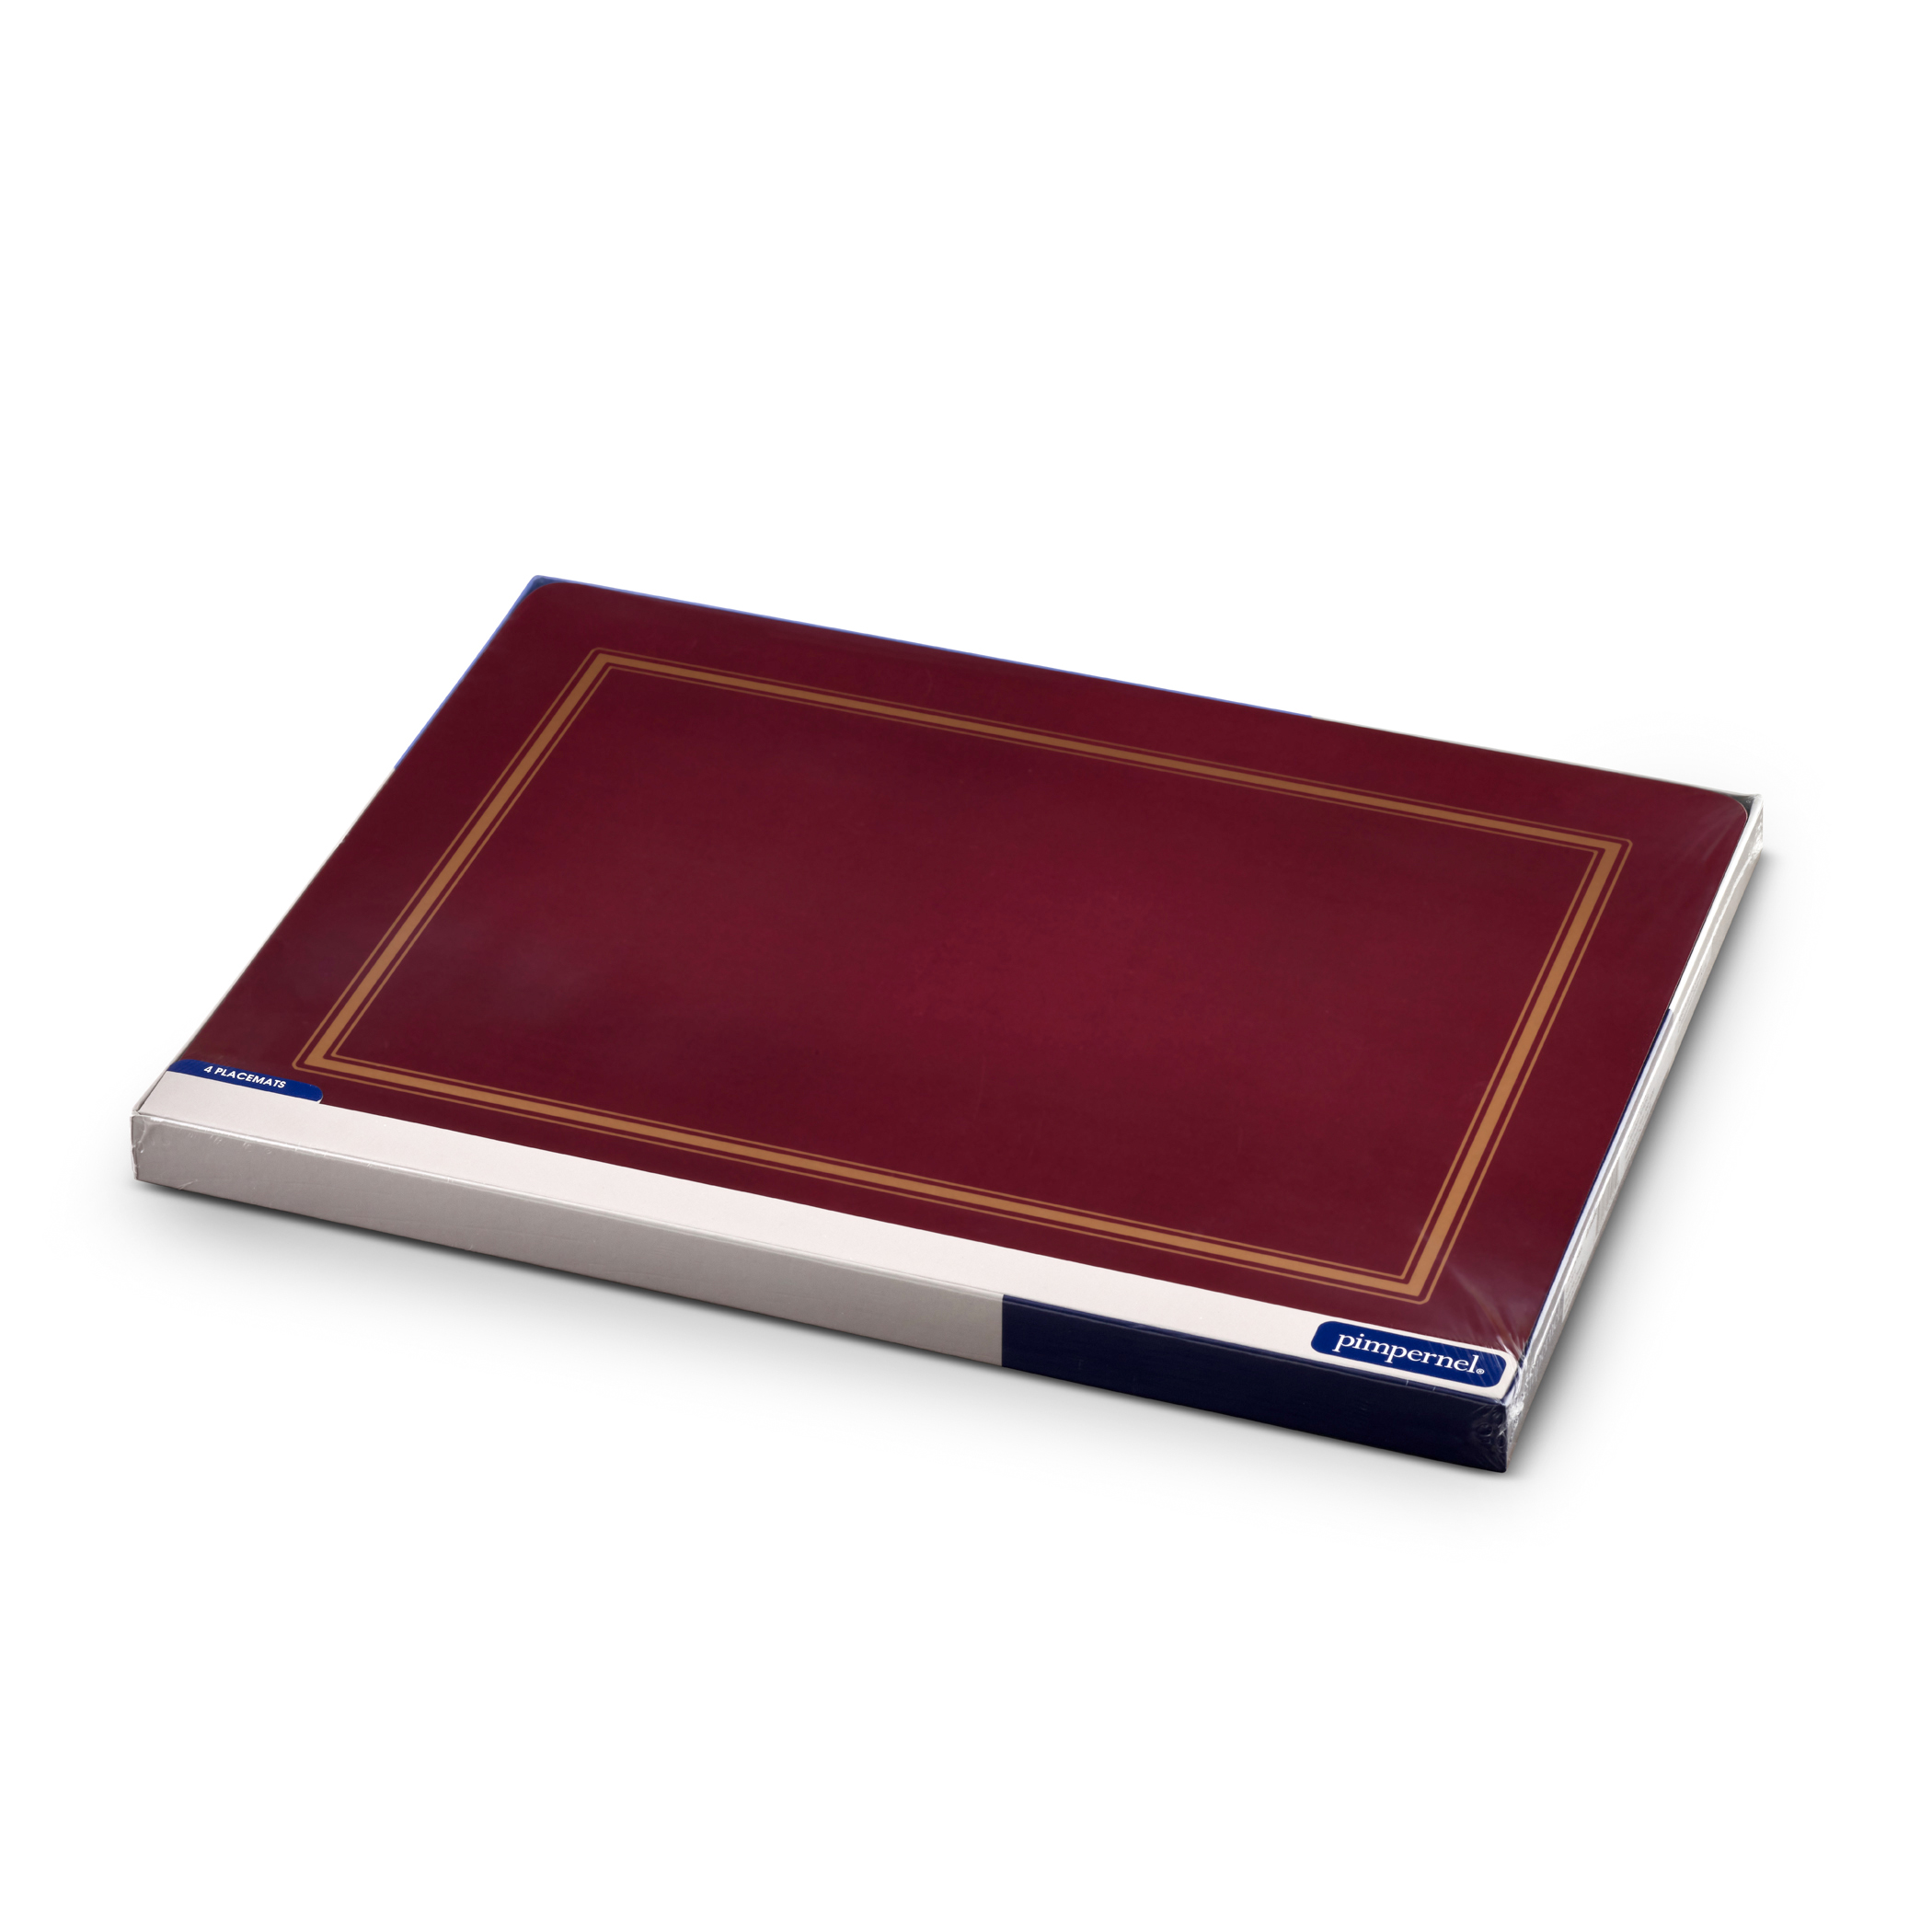 Pimpernel Classic Burgundy Placemats Set of 4 image number 4